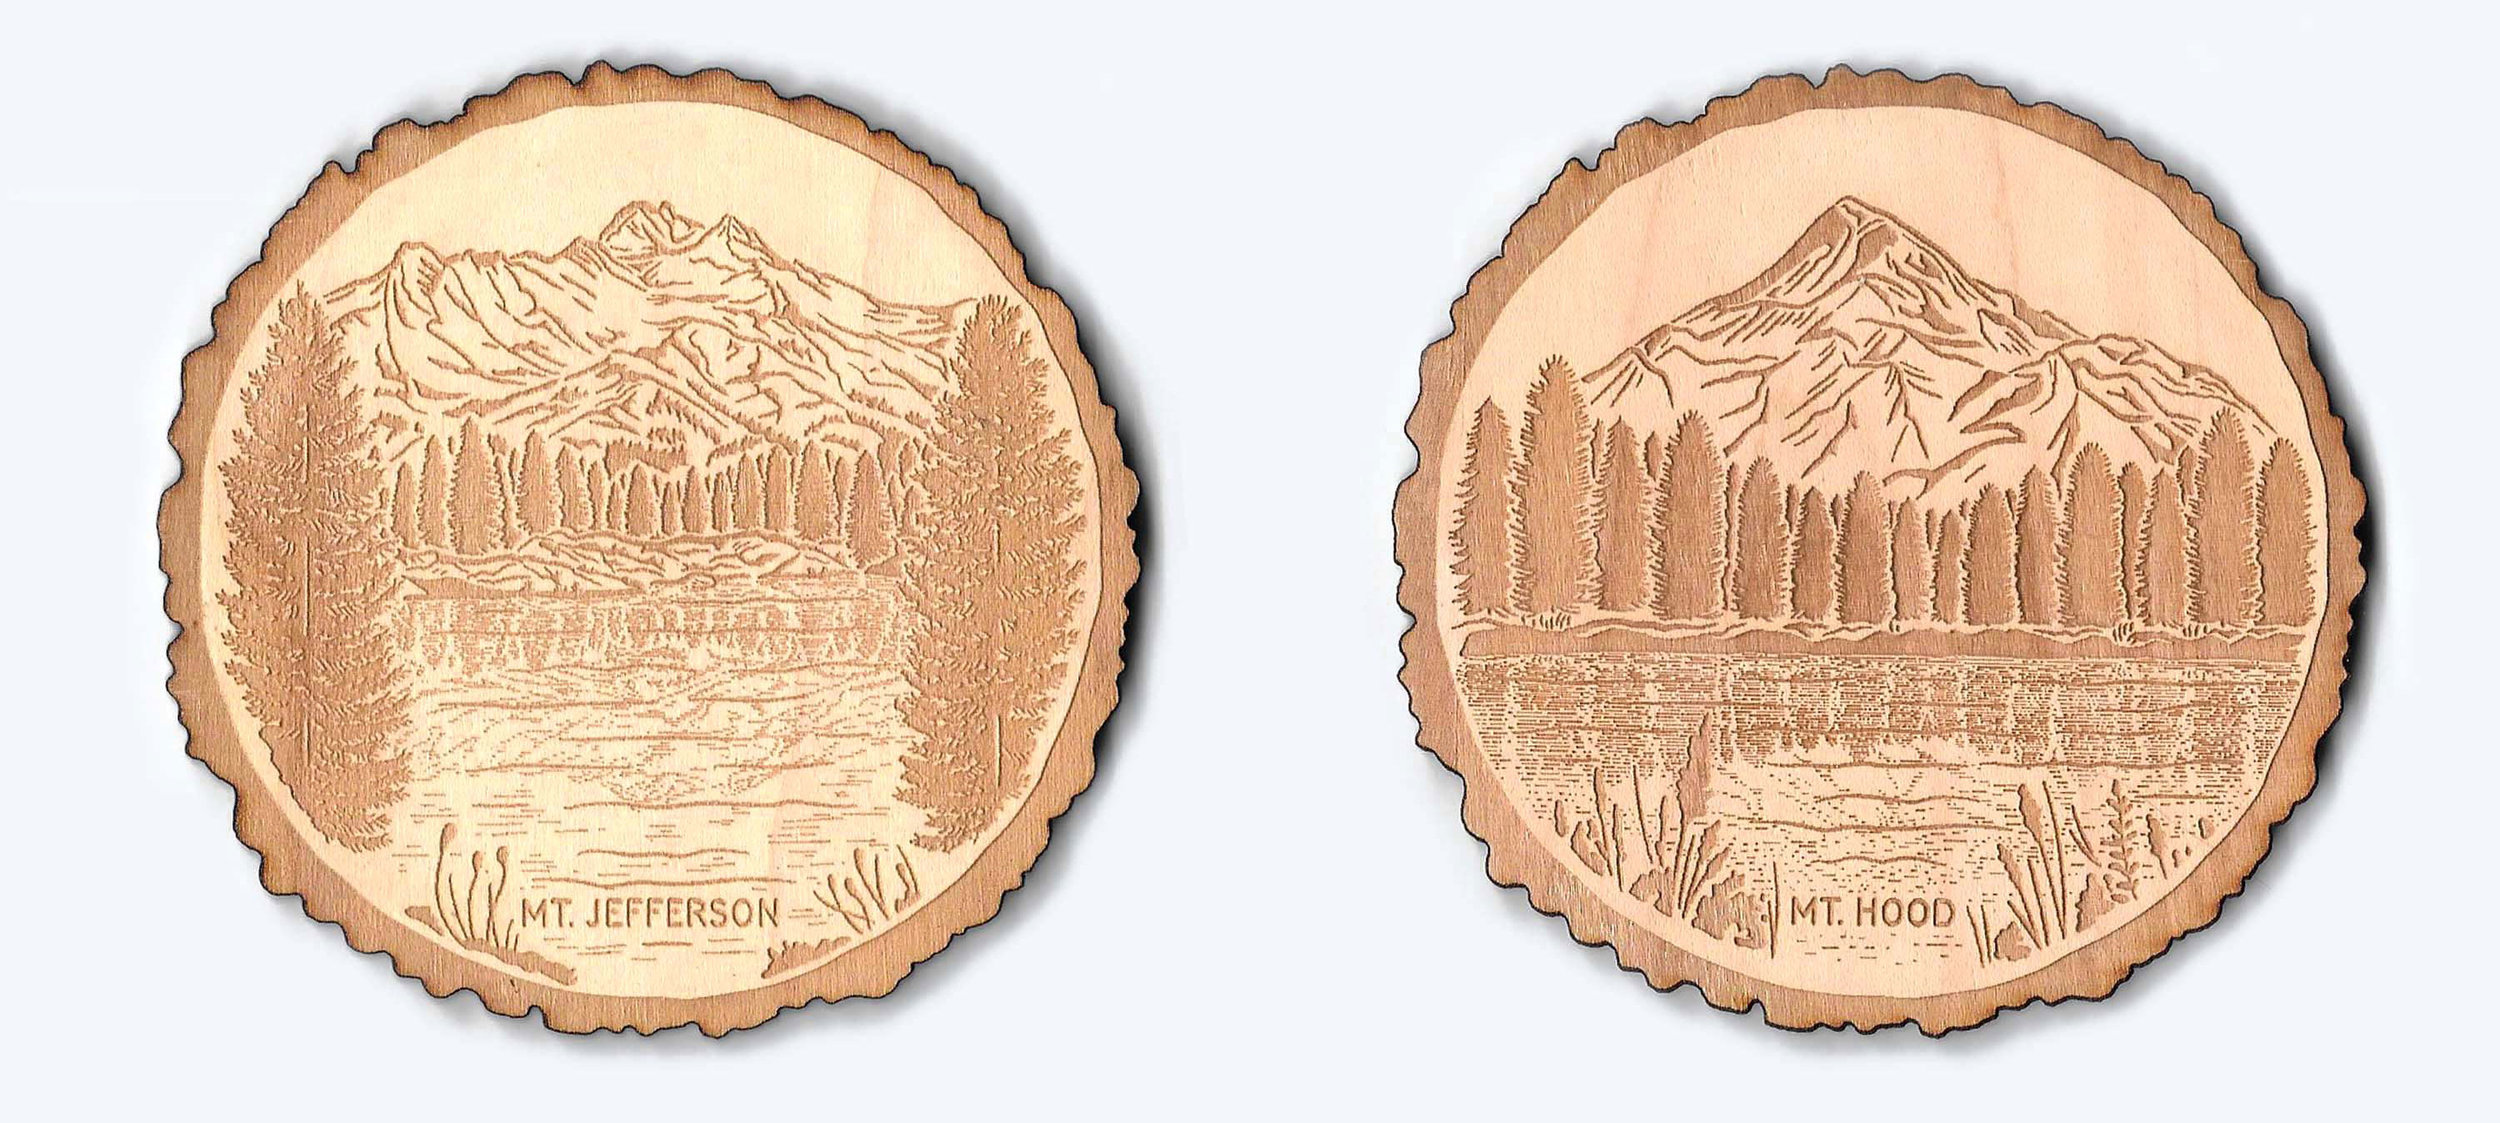 Pacific Northwest Coasters: Mt Jefferson and Mt Hood available  here